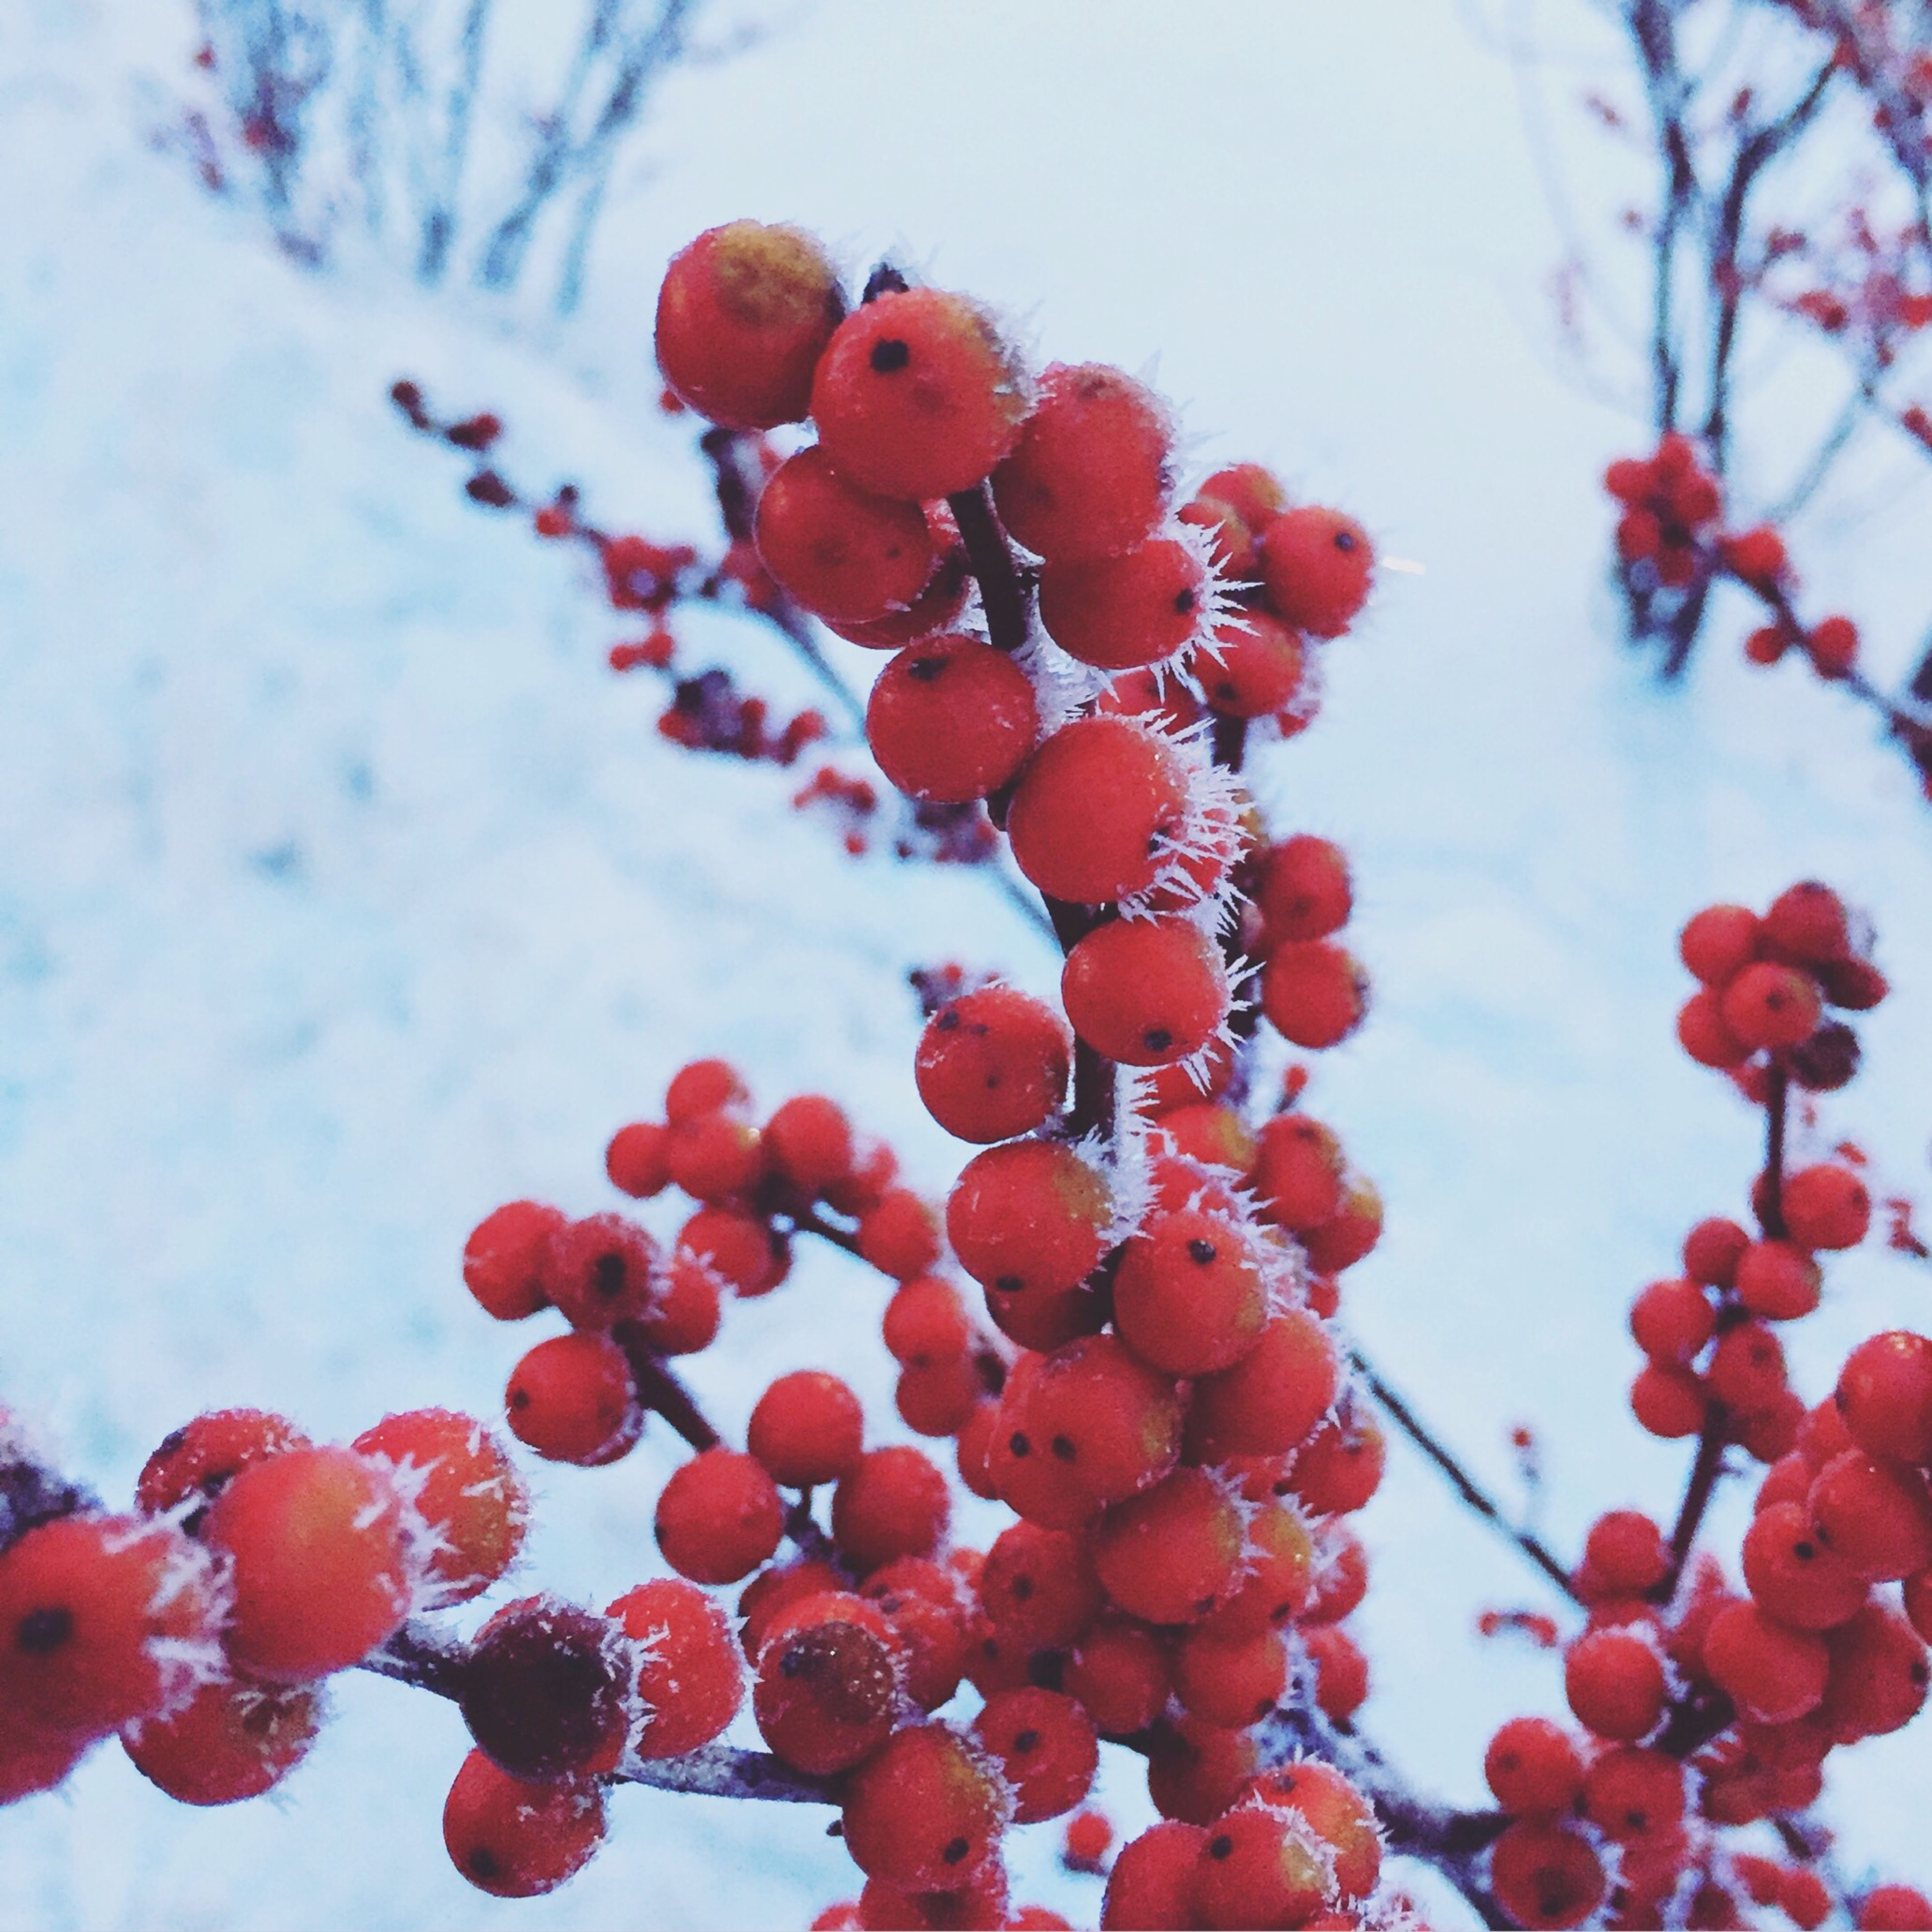 red, fruit, branch, freshness, growth, low angle view, tree, nature, berry, berry fruit, fragility, close-up, season, focus on foreground, beauty in nature, stem, twig, flower, cherry tree, cherry